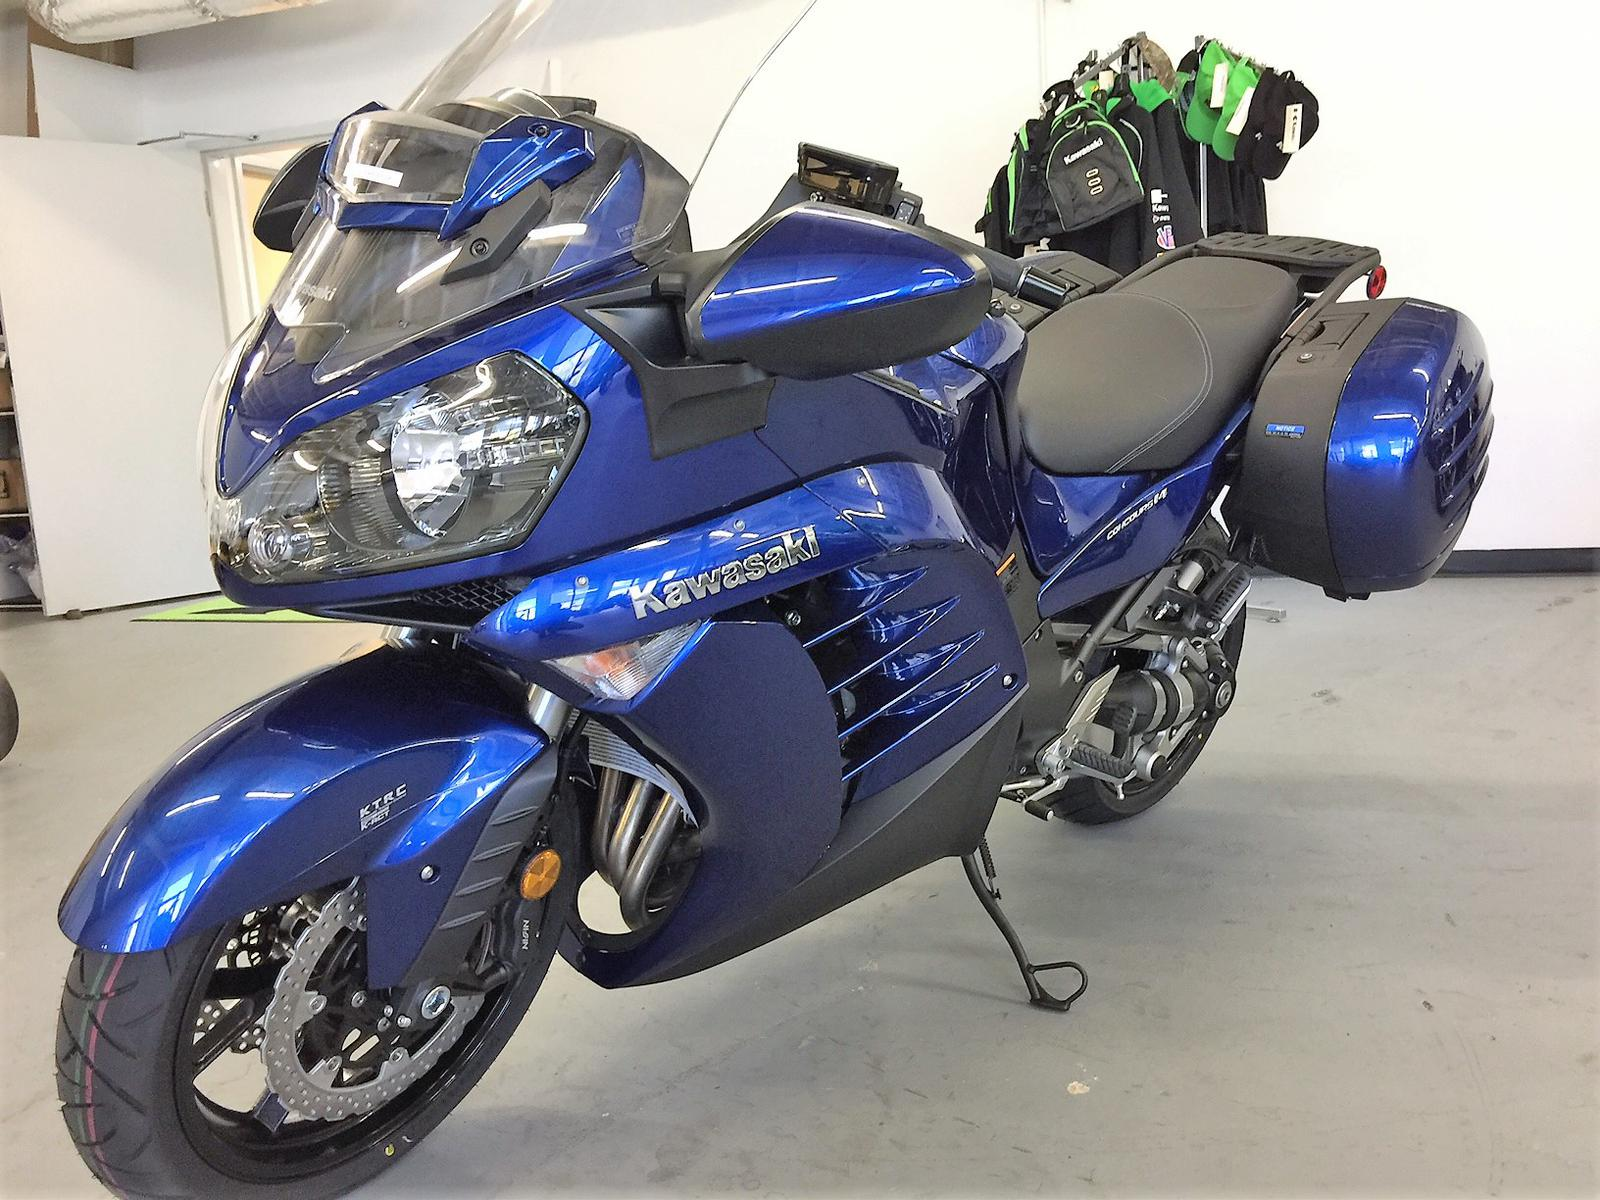 2017 kawasaki concours 14 abs for sale in shreveport, la